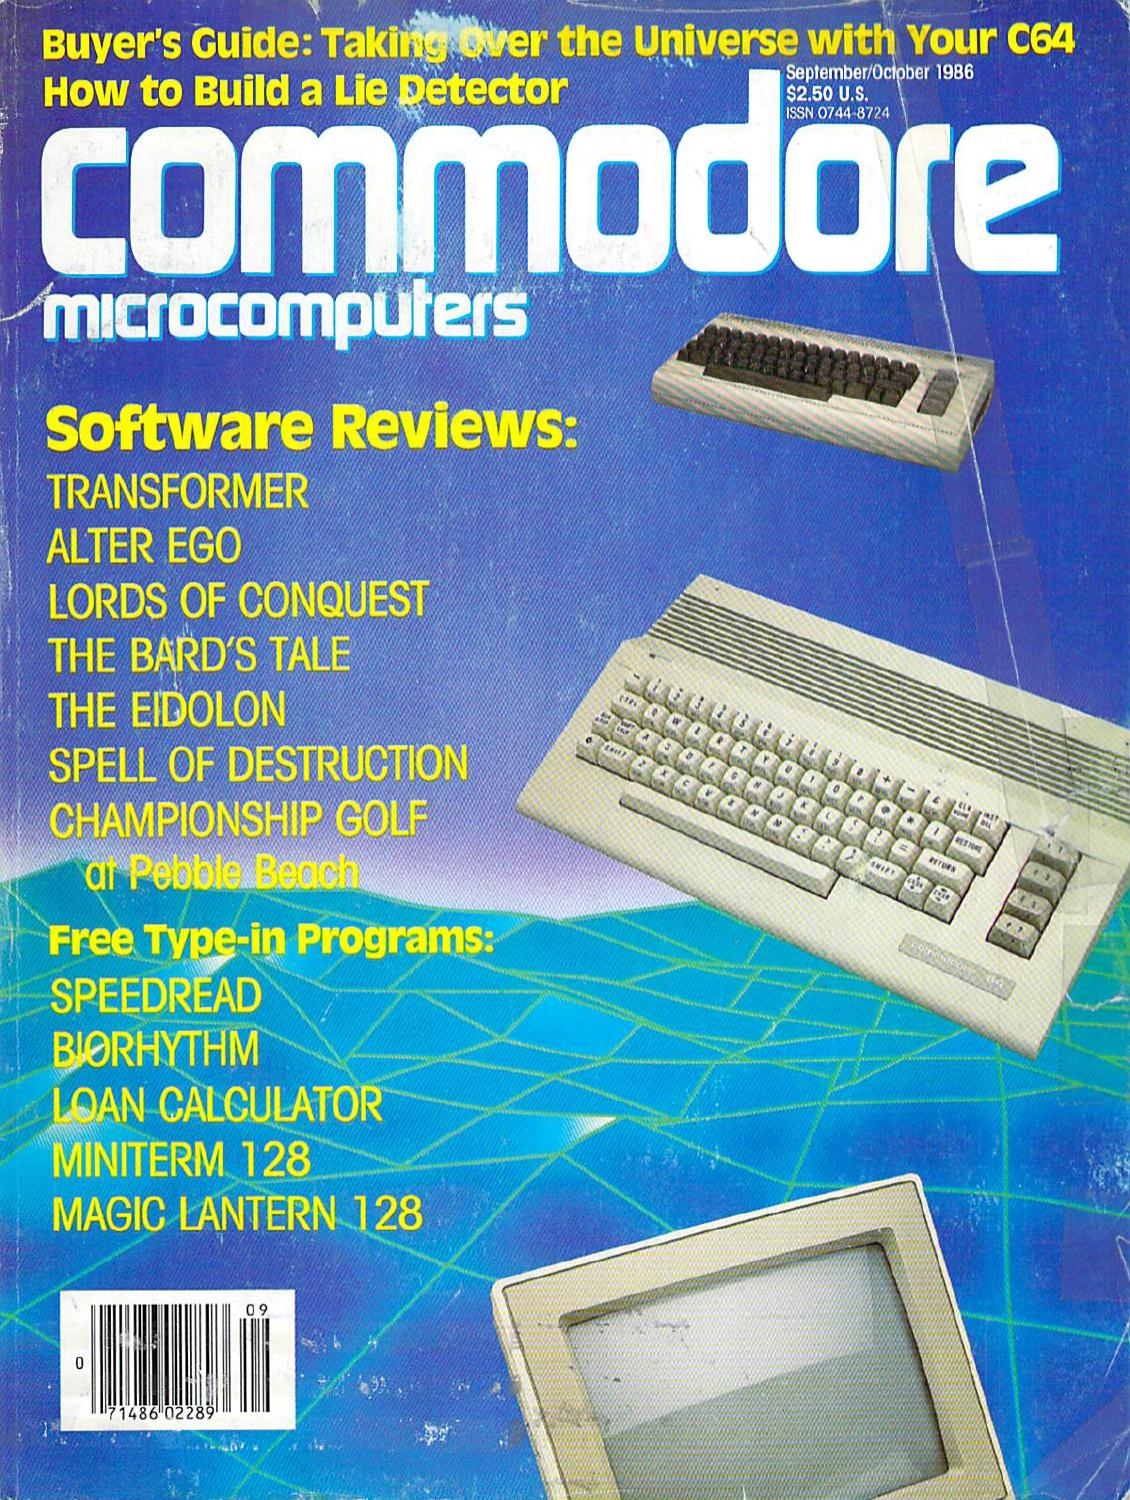 Commodore_MicroComputer_Issue_43_1986_Sep_Oct by Zetmoon - issuu